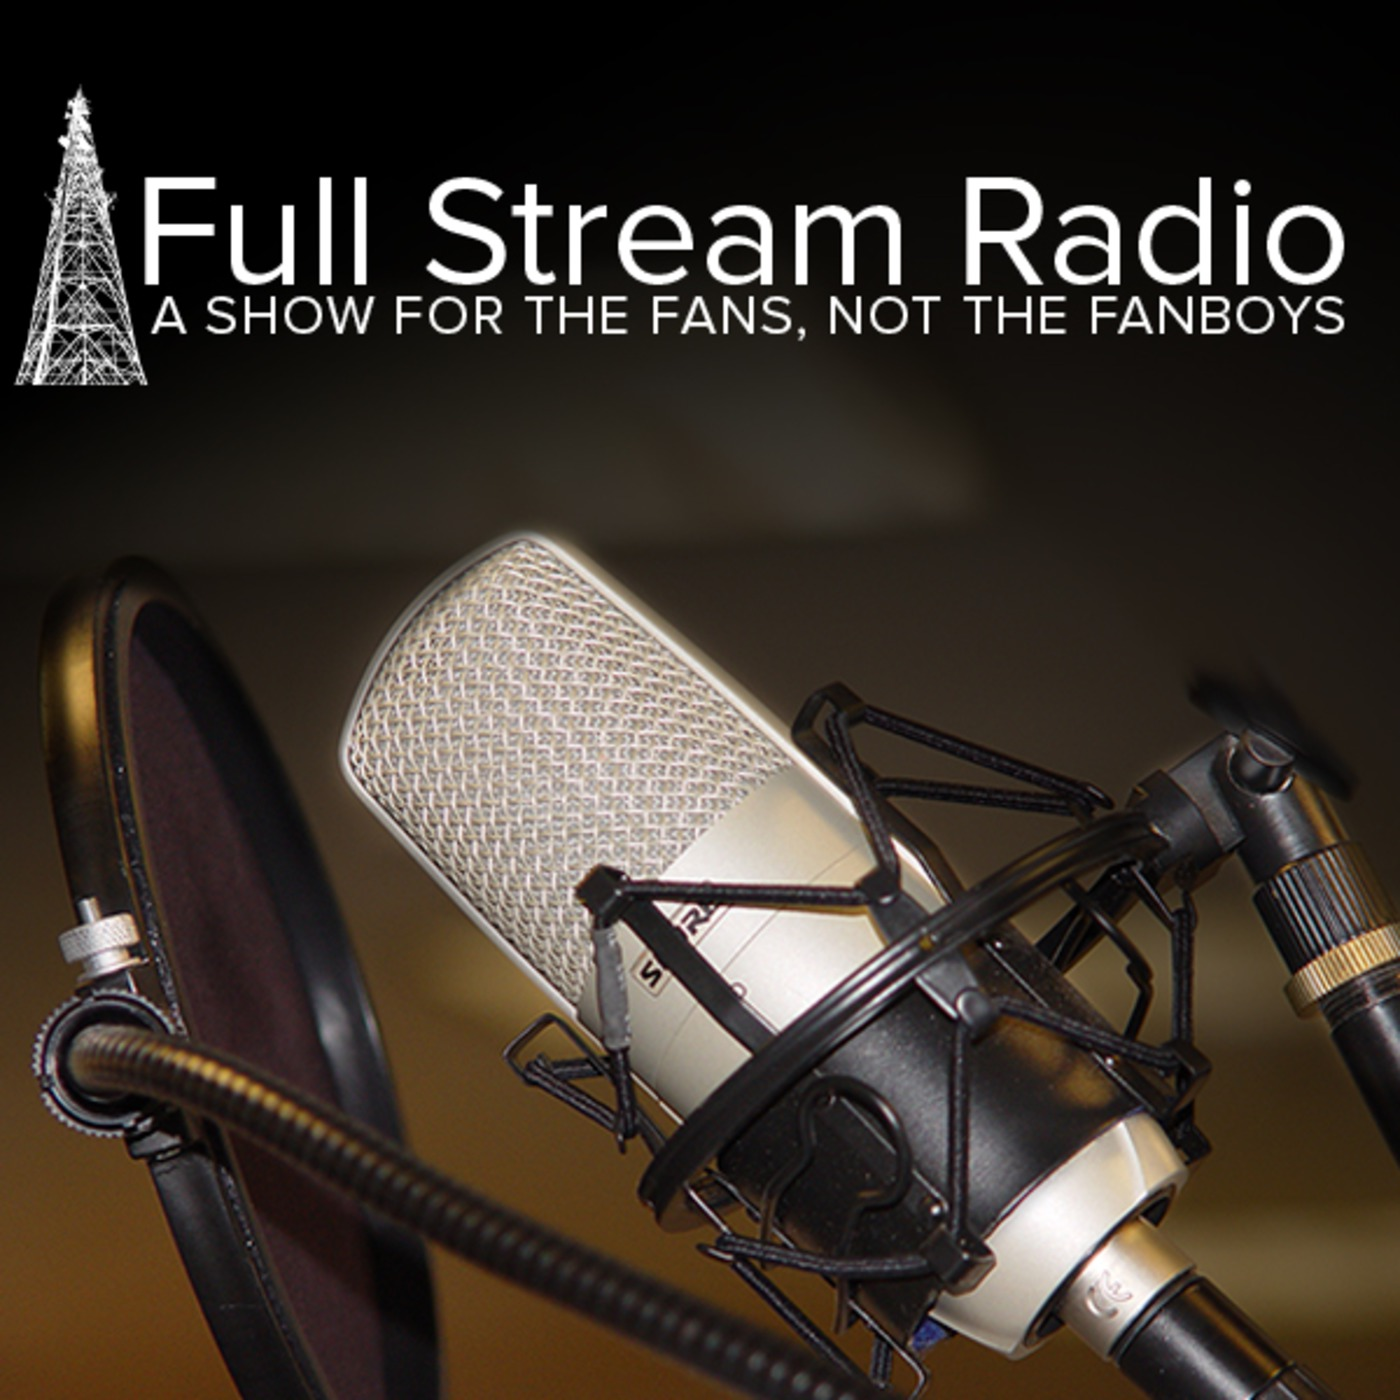 Full Stream Radio